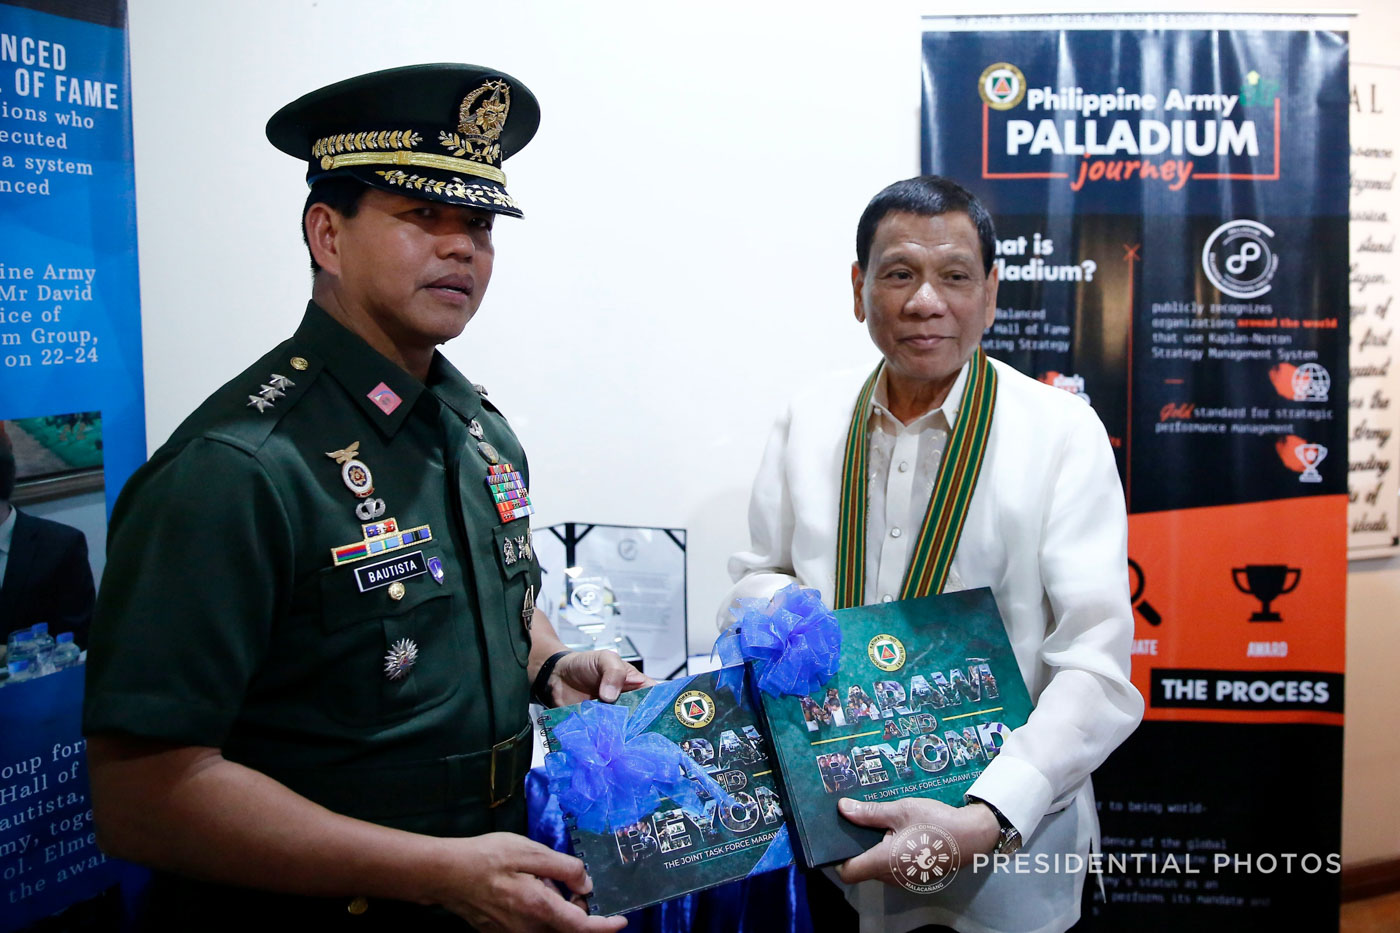 MARAWI AND BEYOND. President Rodrigo Duterte receives a copy of the book 'Marawi and Beyond' from Army chief Lieutenant General Rolando Bautista.